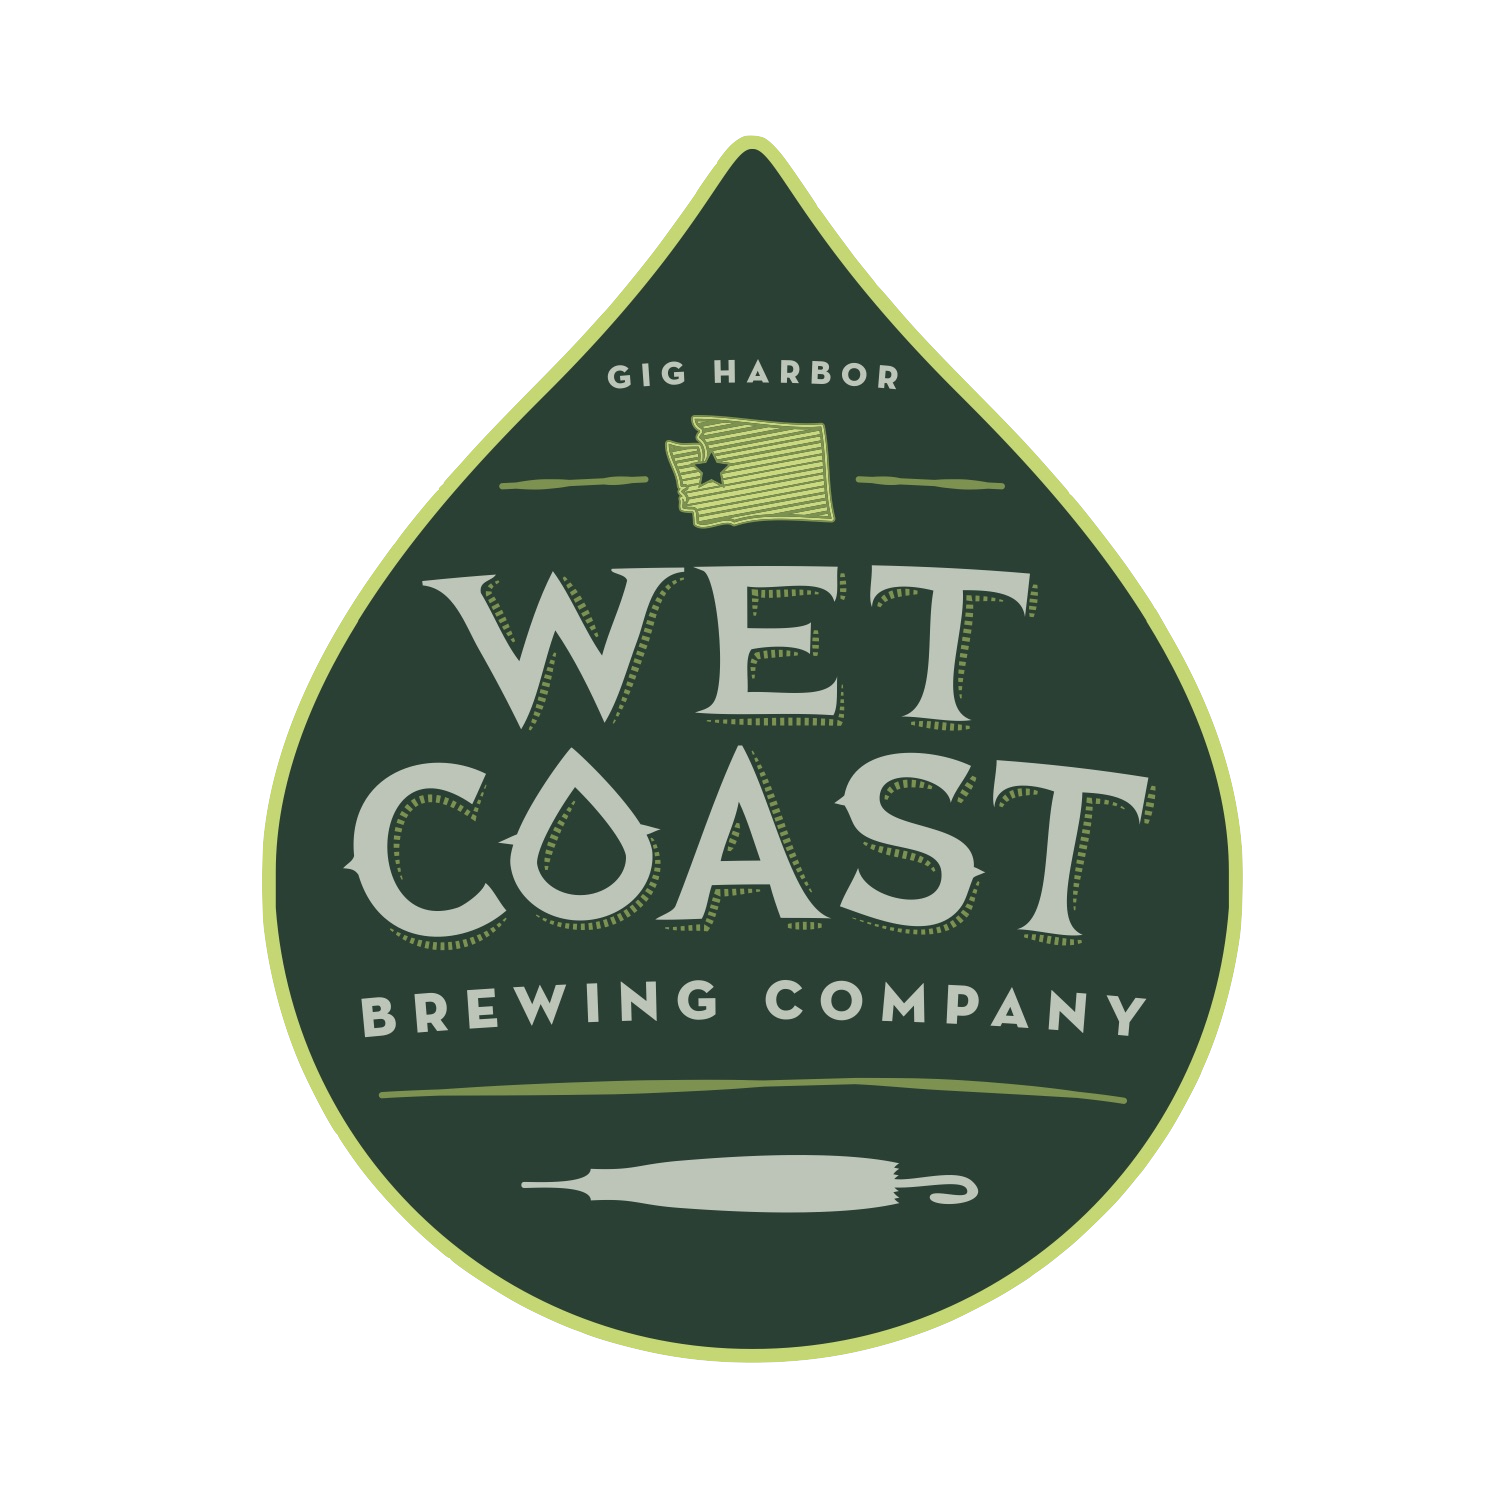 Wet Coast Brewing Company